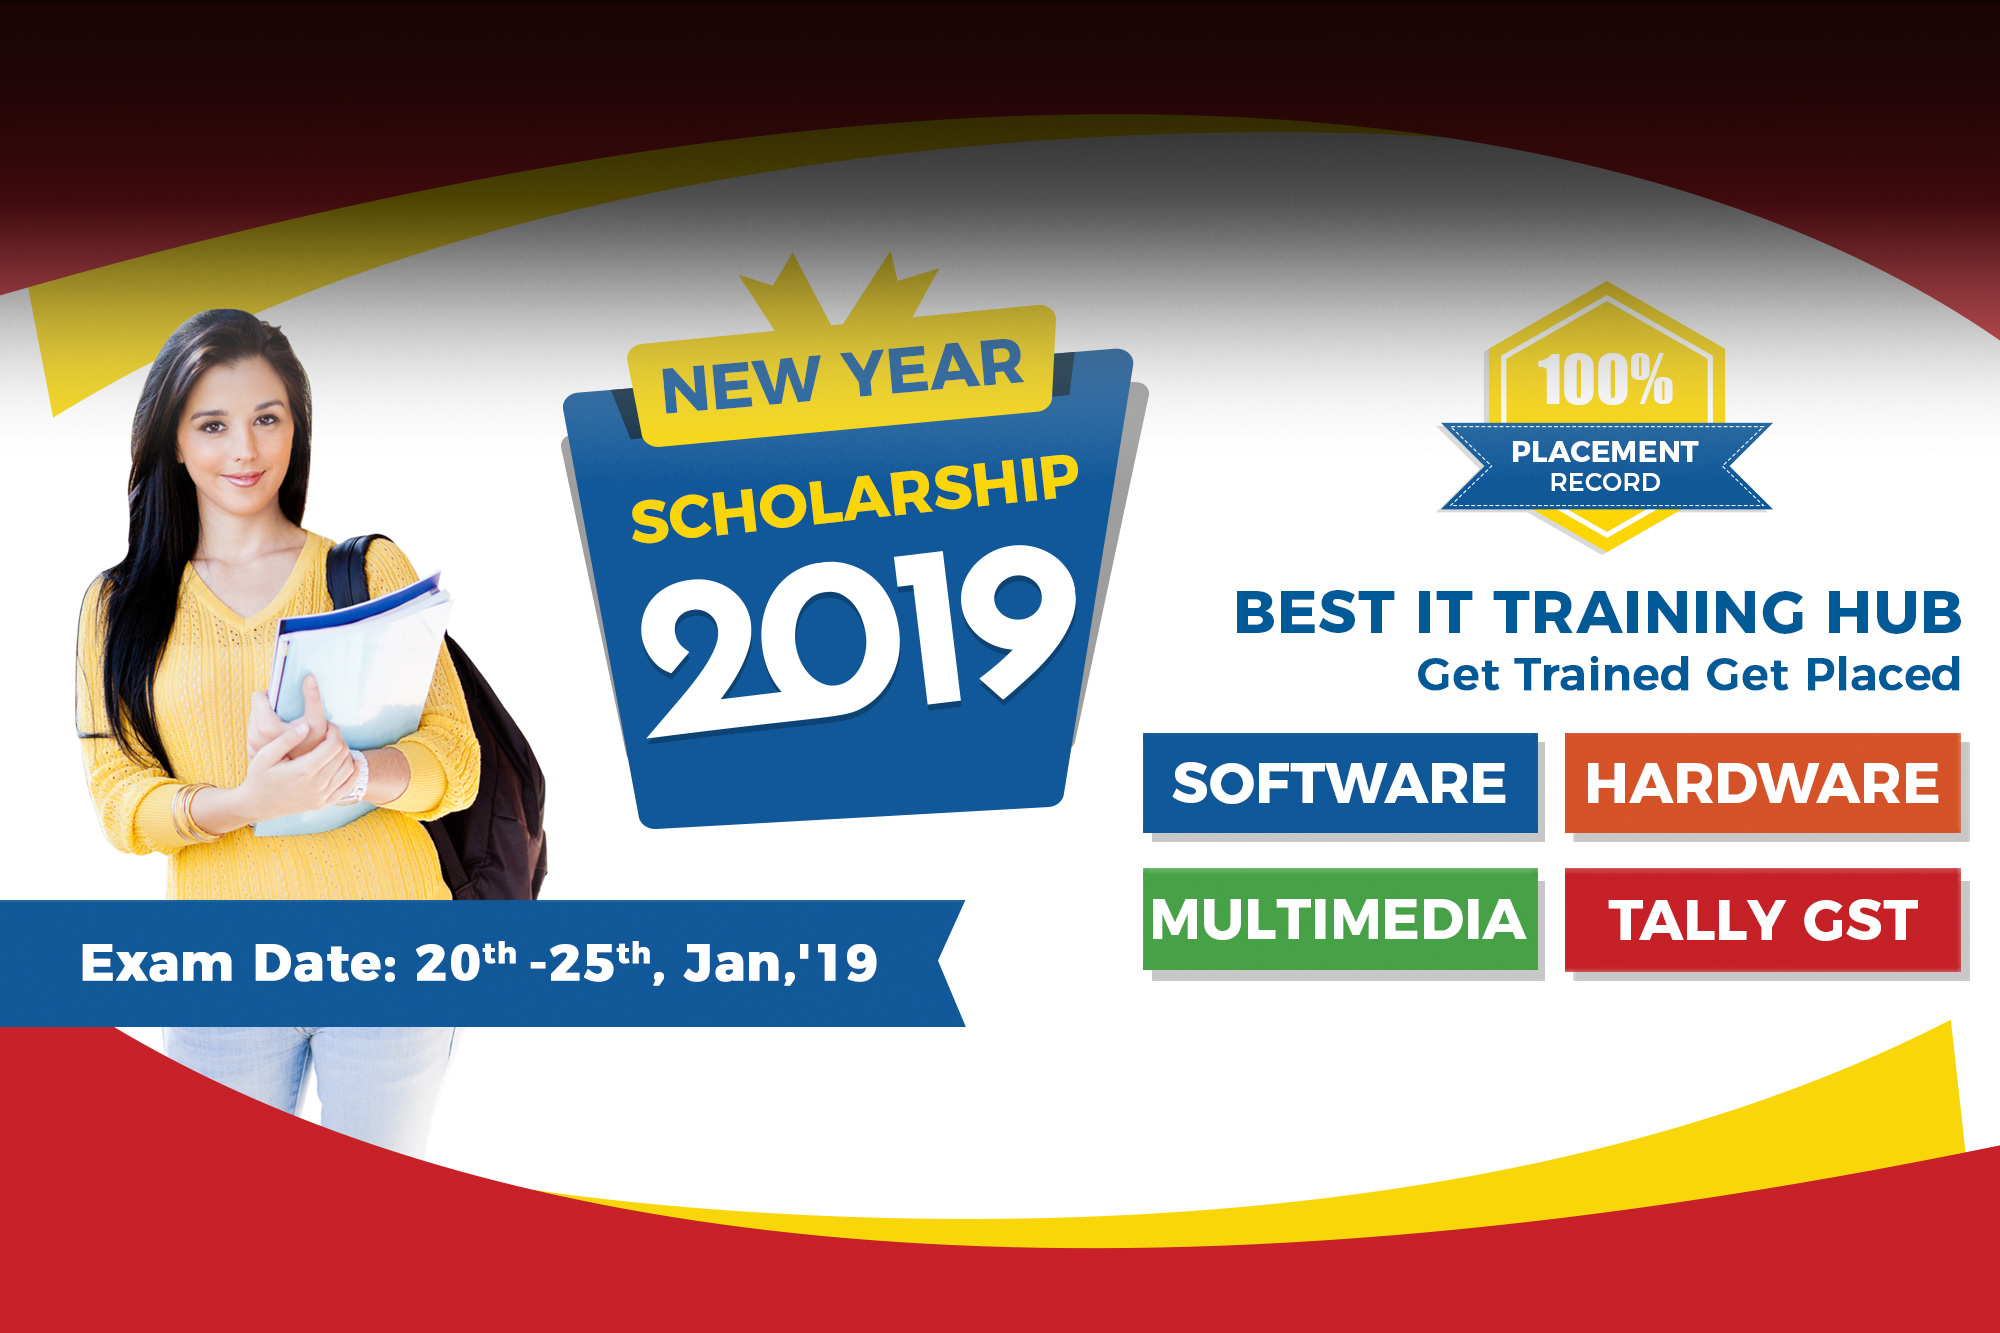 New Year Scholarship 2019